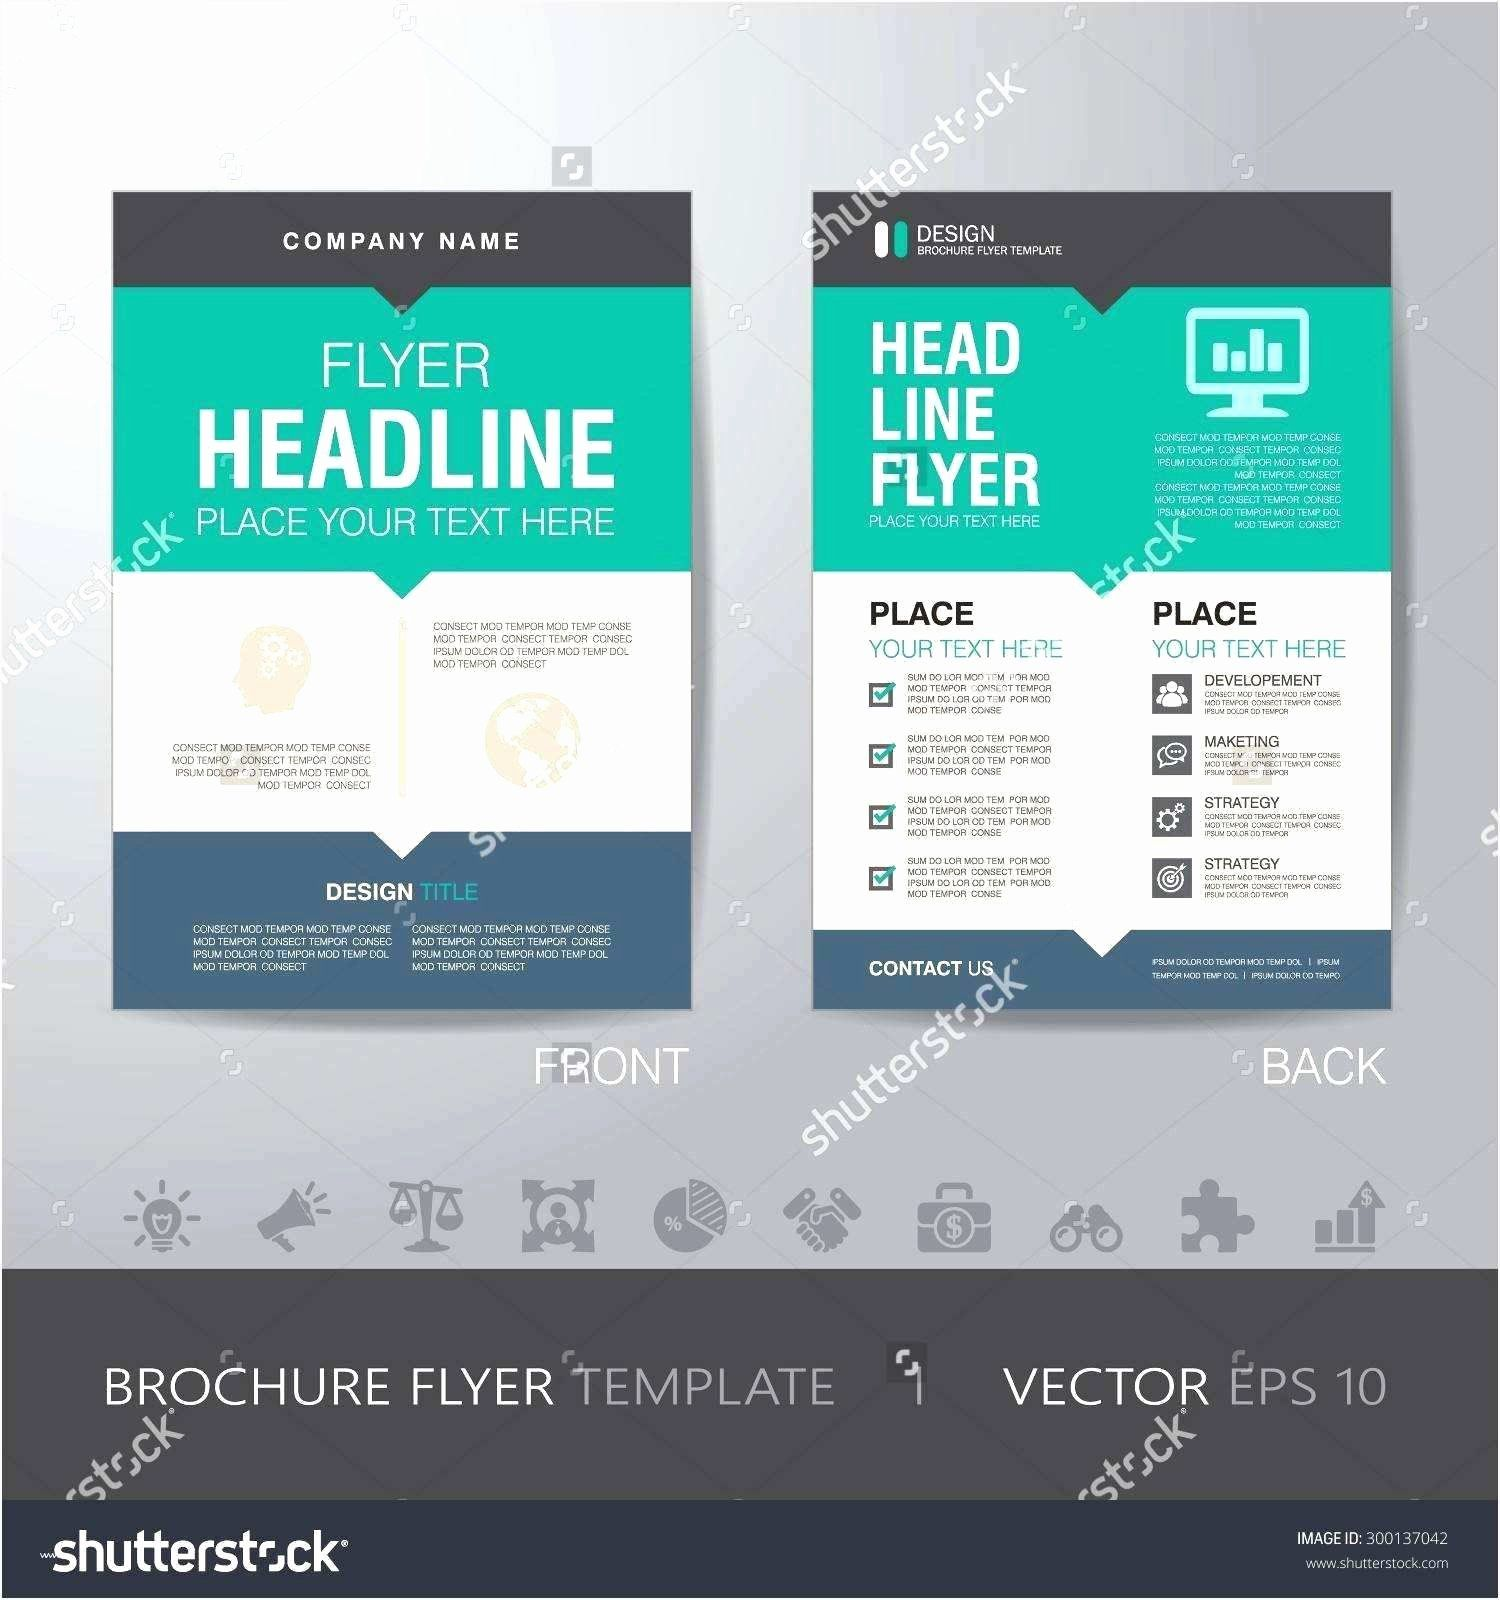 Personal Business Cards Template Lovely 038 Avery Business Card Template View Name Free D Free Business Card Templates Free Label Templates Card Templates Free